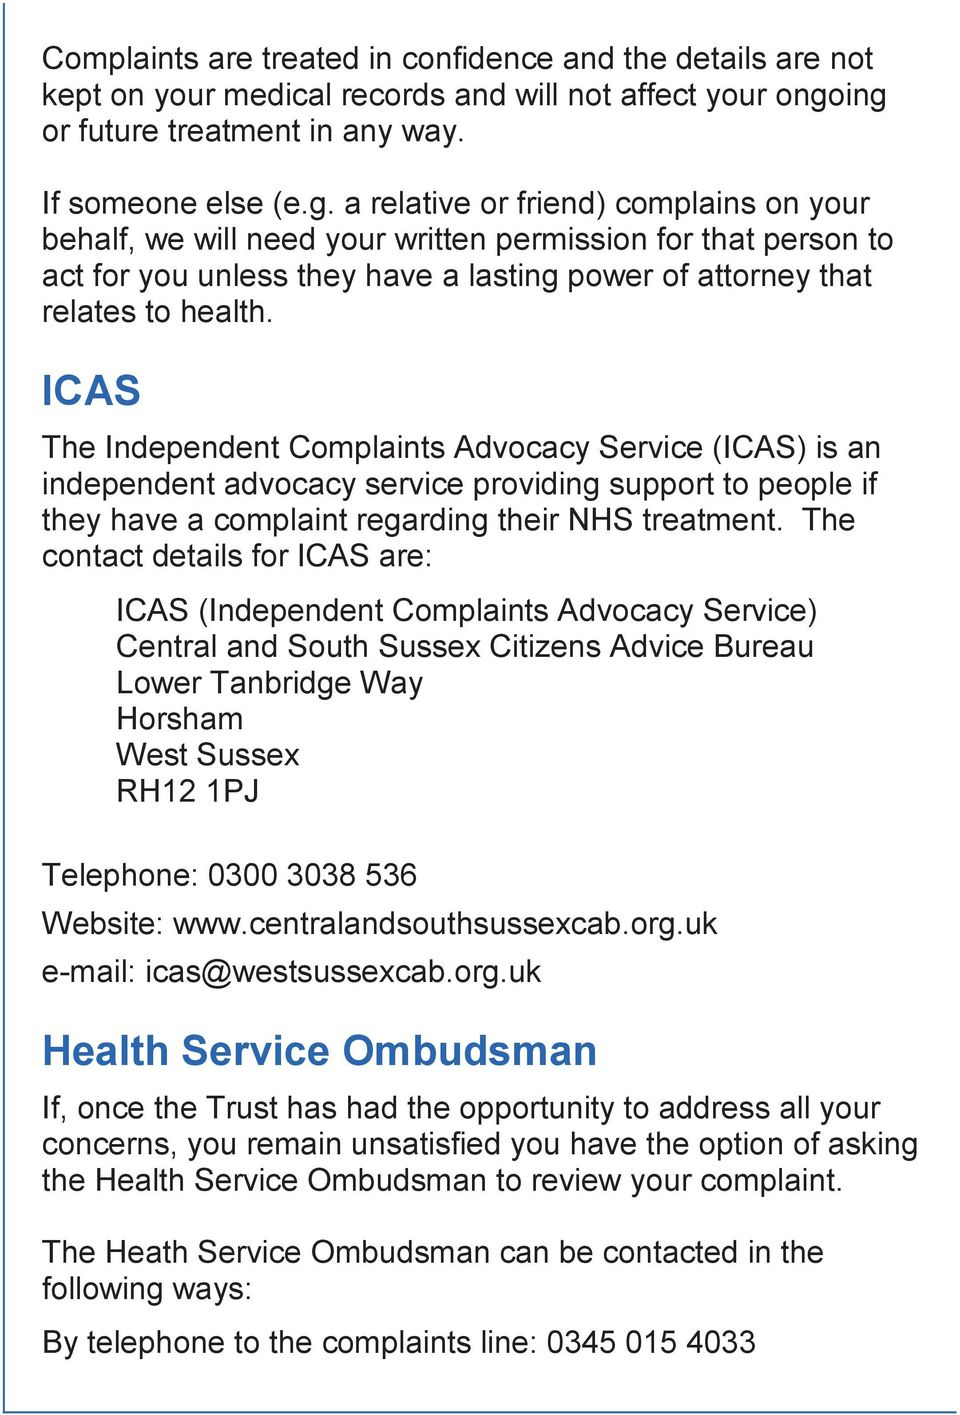 ICAS The Independent Complaints Advocacy Service (ICAS) is an independent advocacy service providing support to people if they have a complaint regarding their NHS treatment.